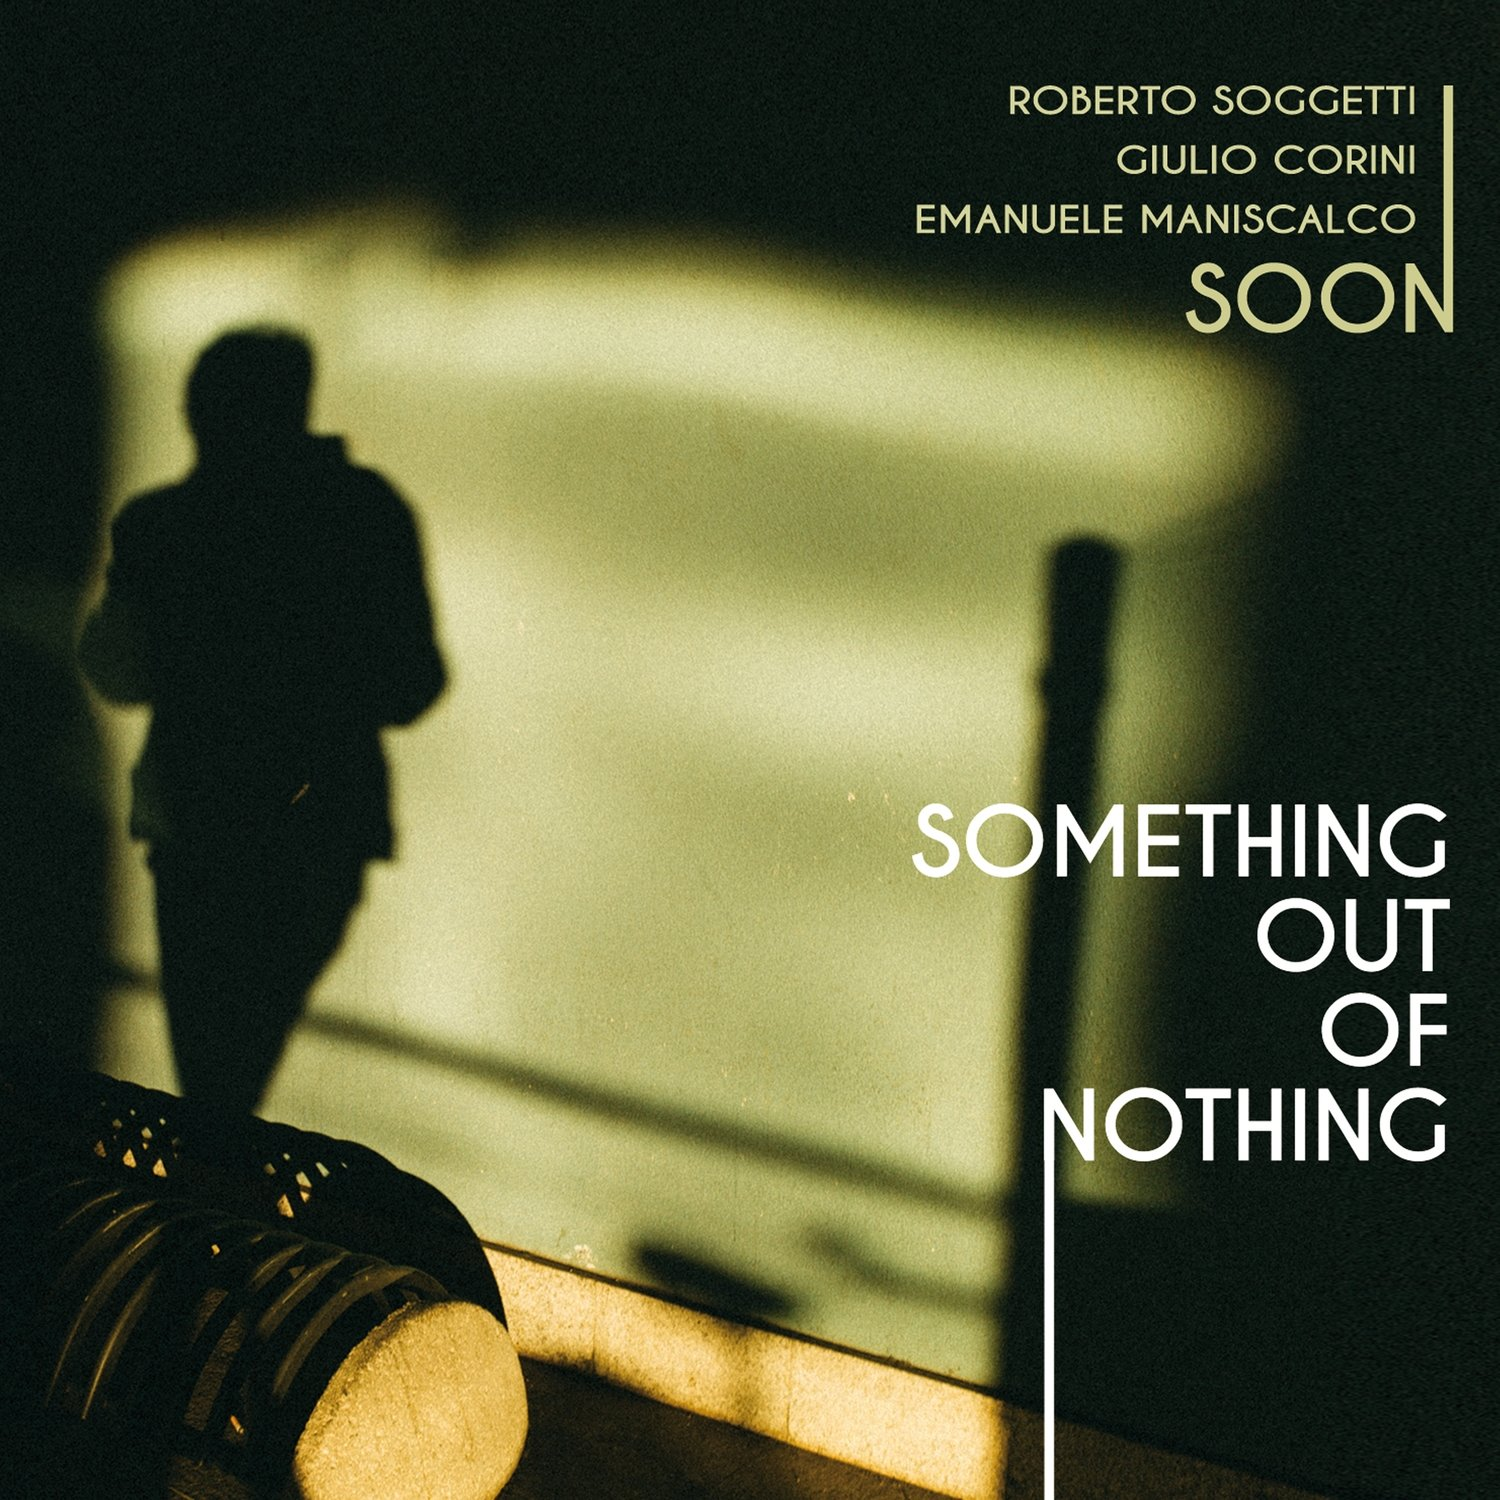 SOON – SOGGETTI/CORINI/MANISCALCO  «Something out of nothing»